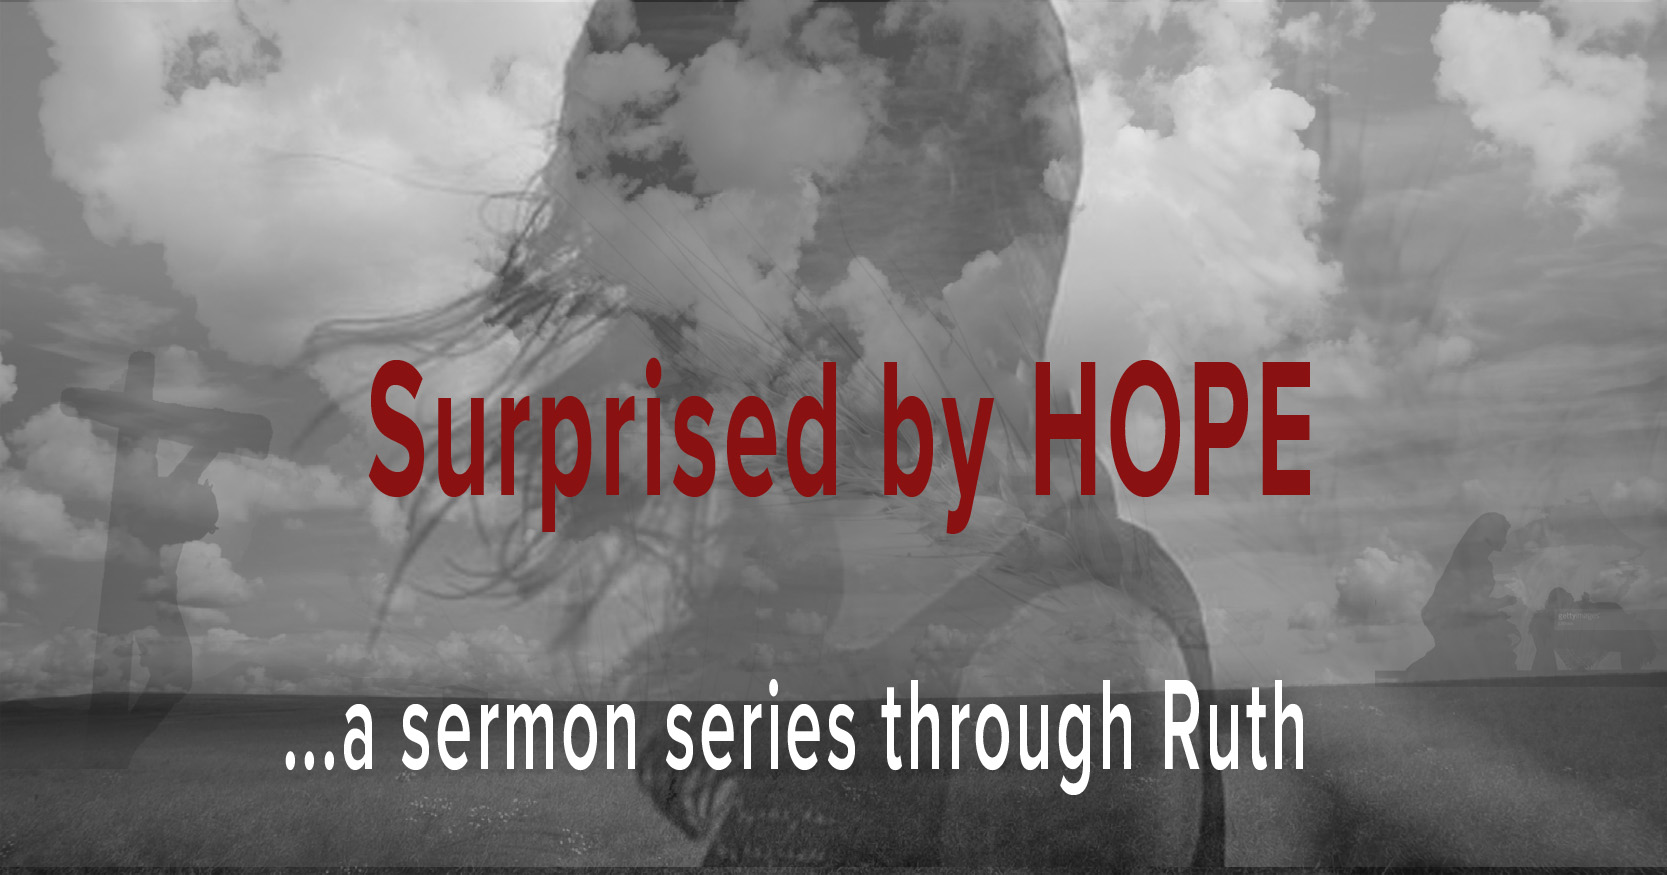 Advent sermon series through the book of Ruth.